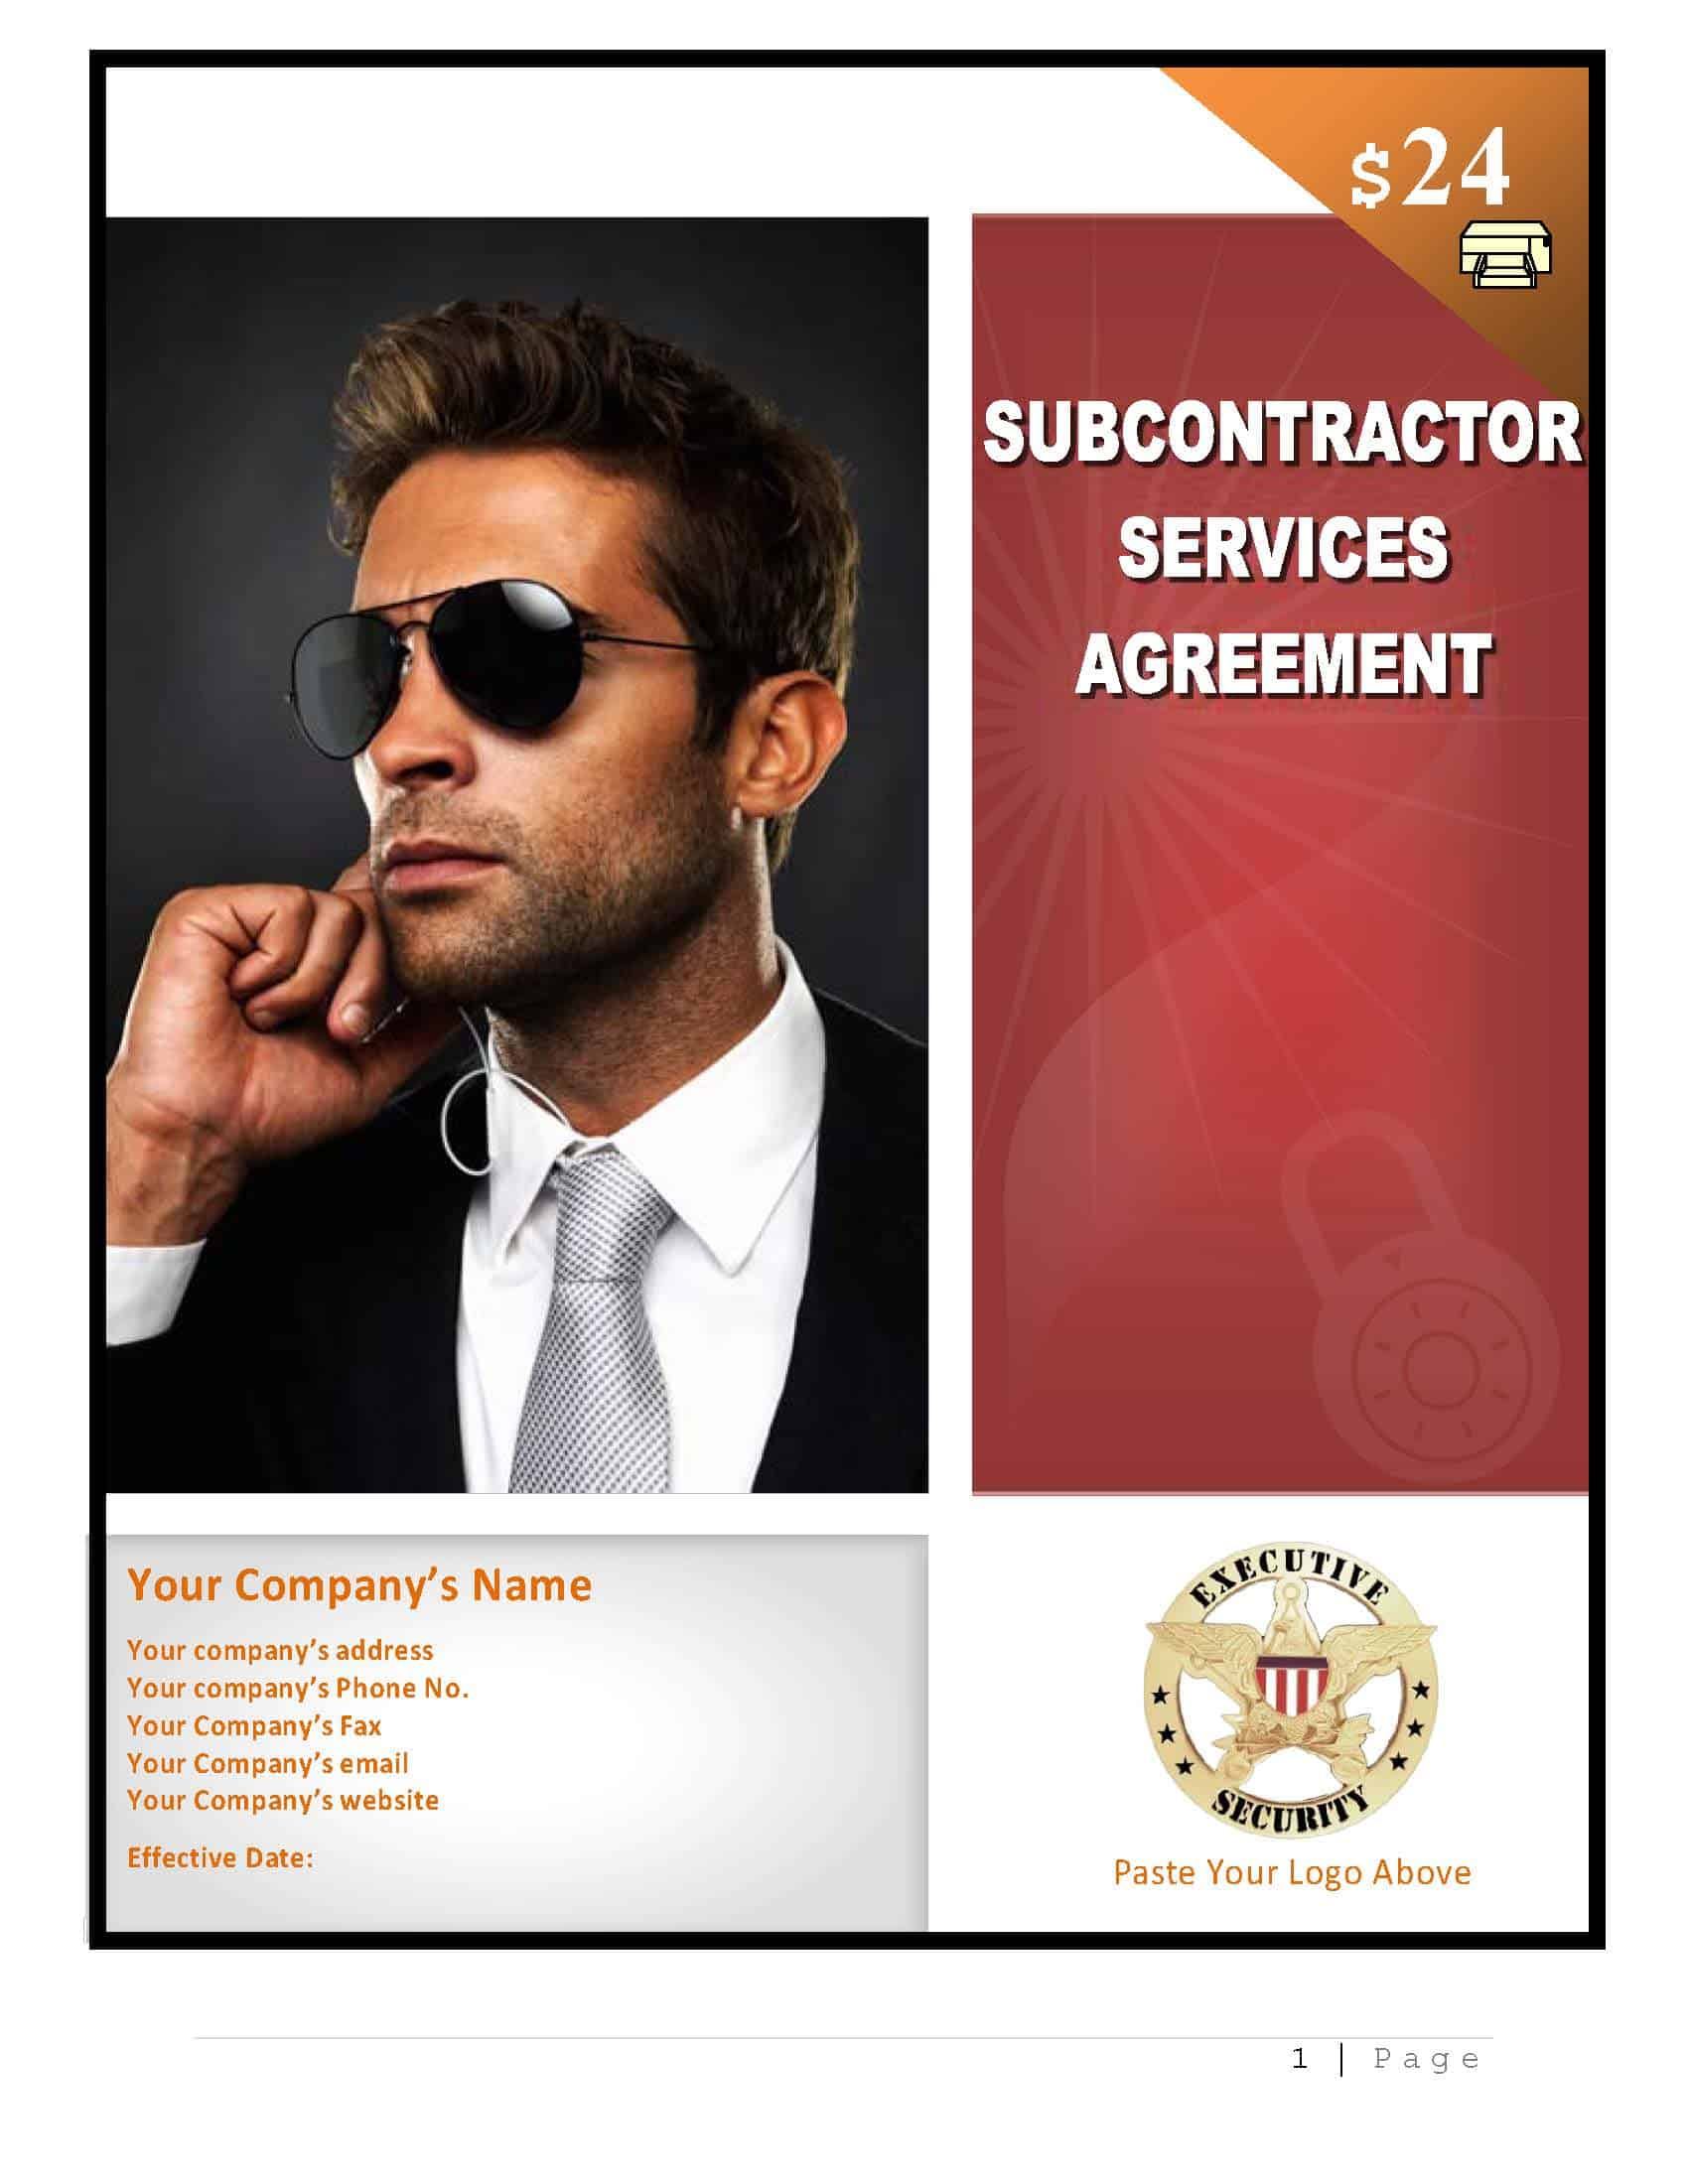 security subcontractor agreement